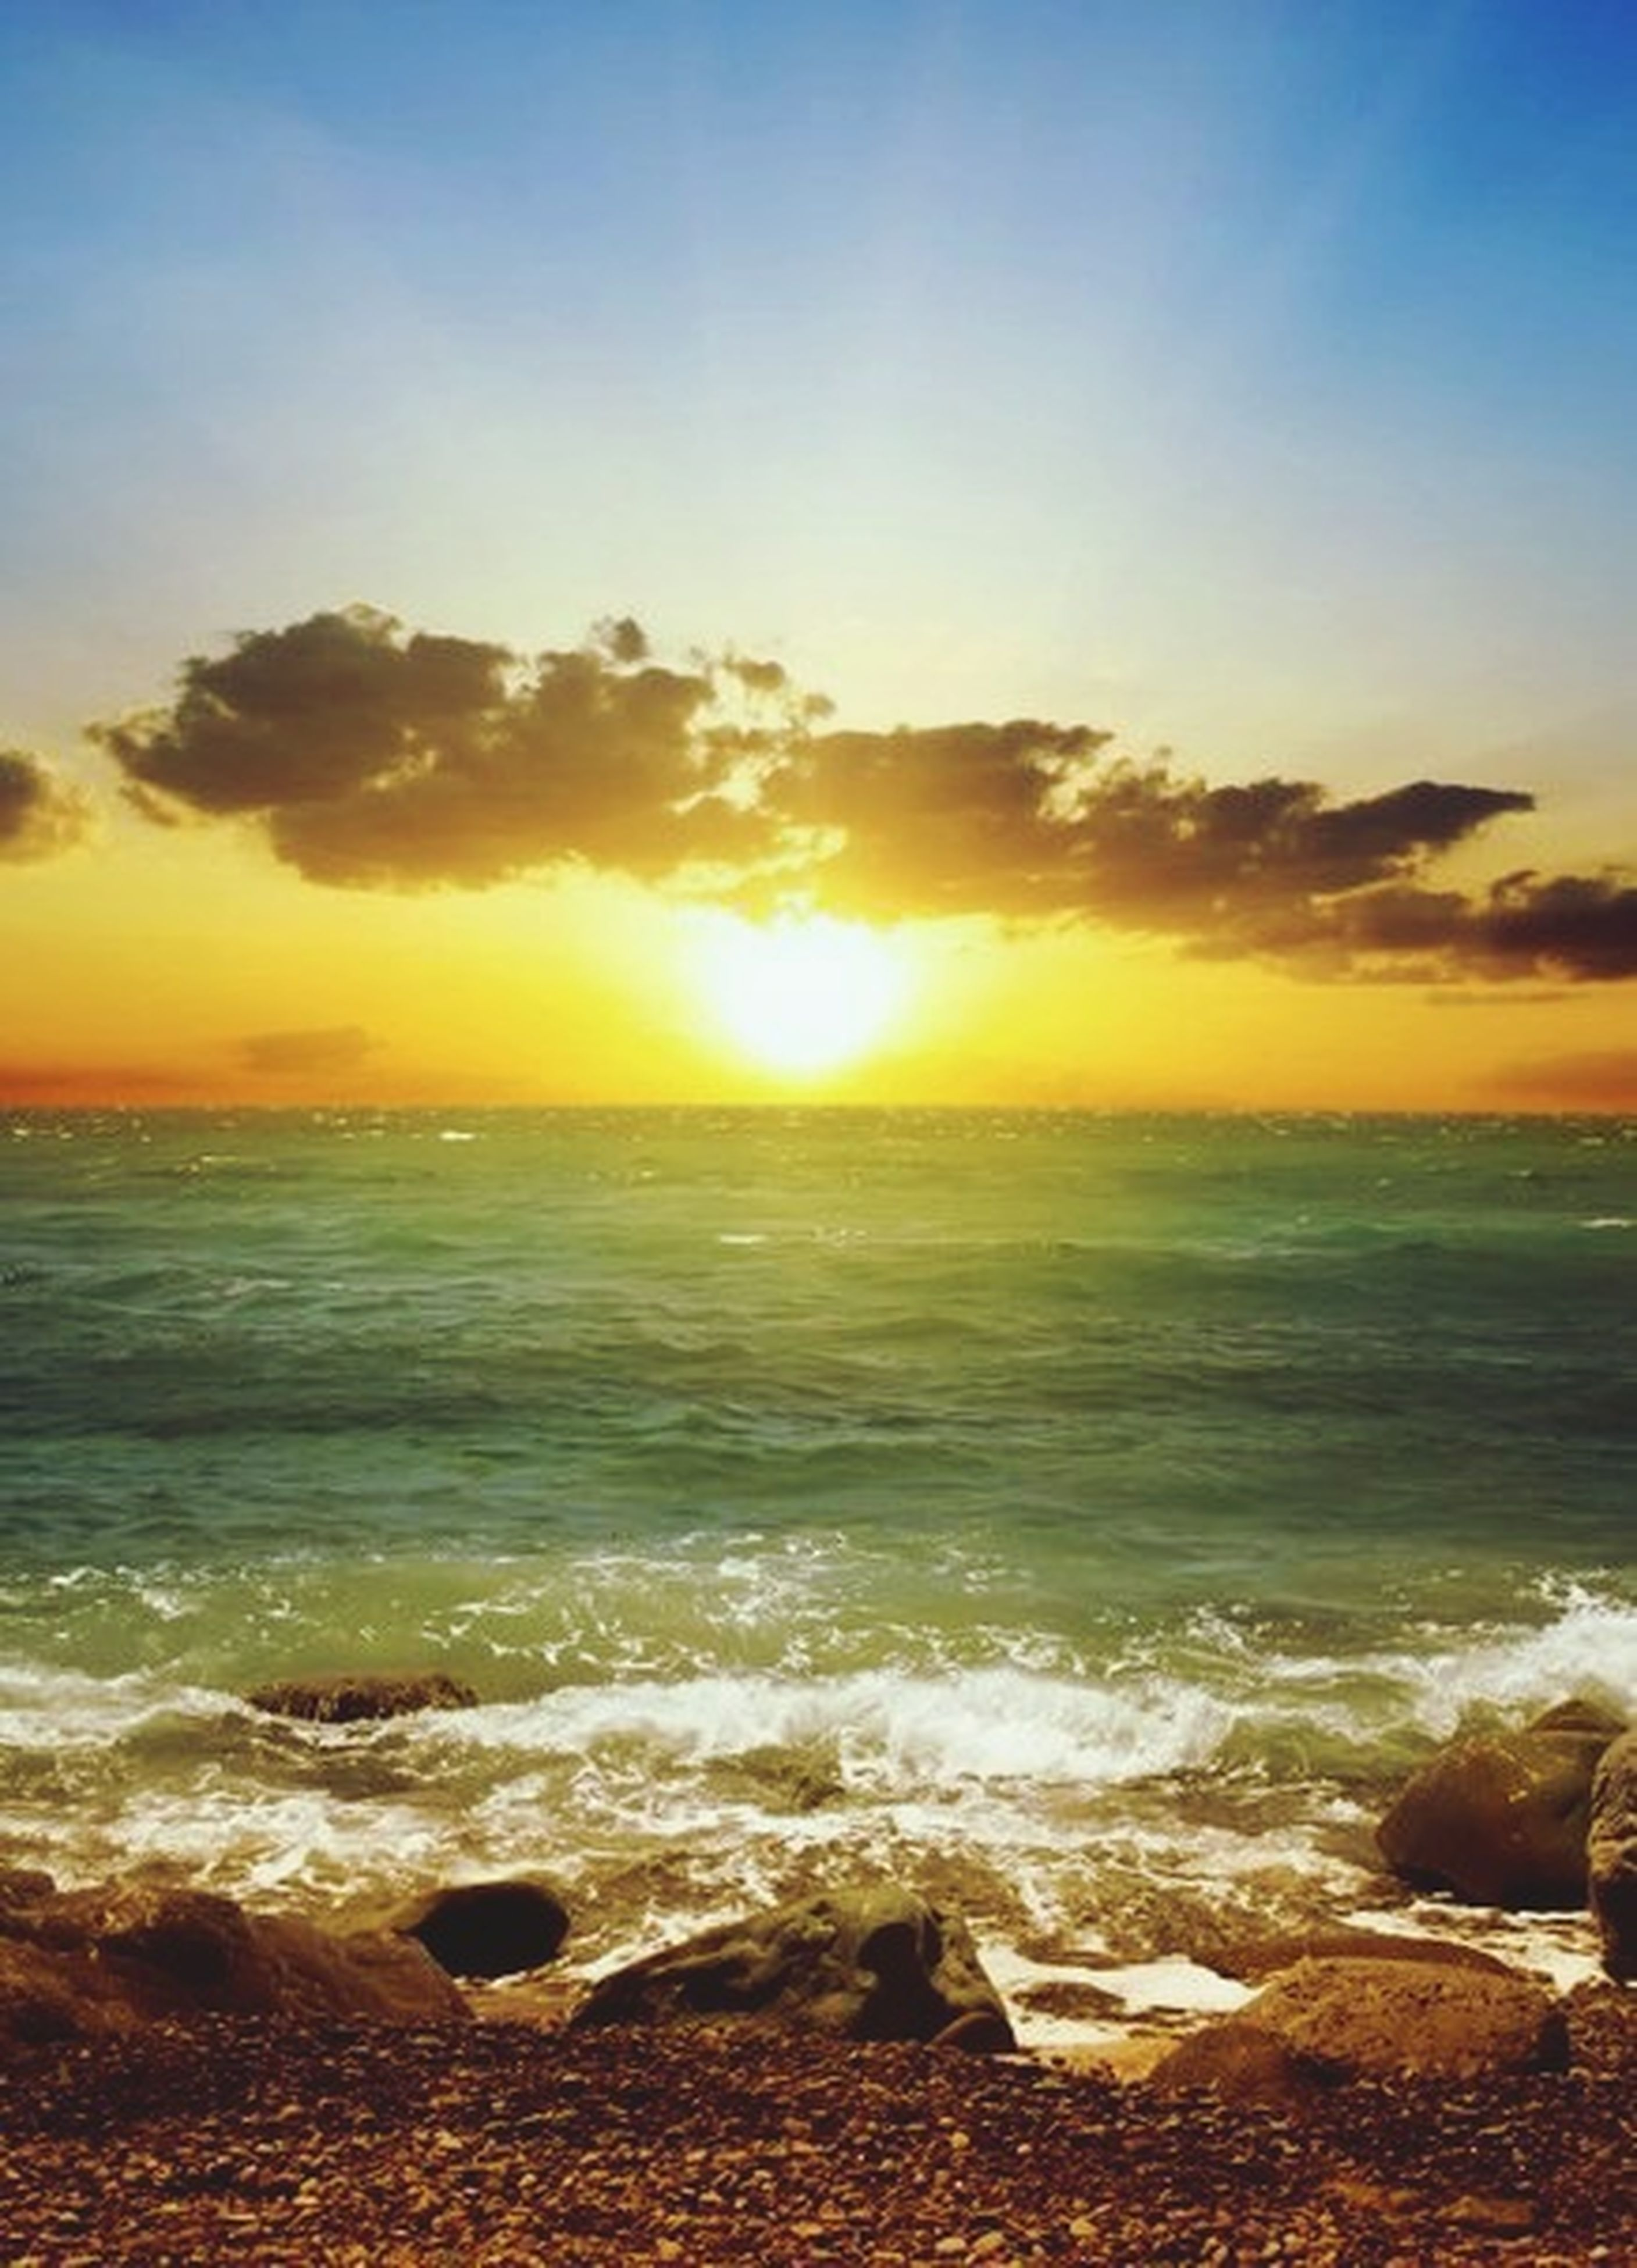 sea, water, horizon over water, sunset, beach, scenics, beauty in nature, sky, shore, tranquil scene, wave, tranquility, orange color, nature, idyllic, sun, surf, cloud - sky, rock - object, sunlight